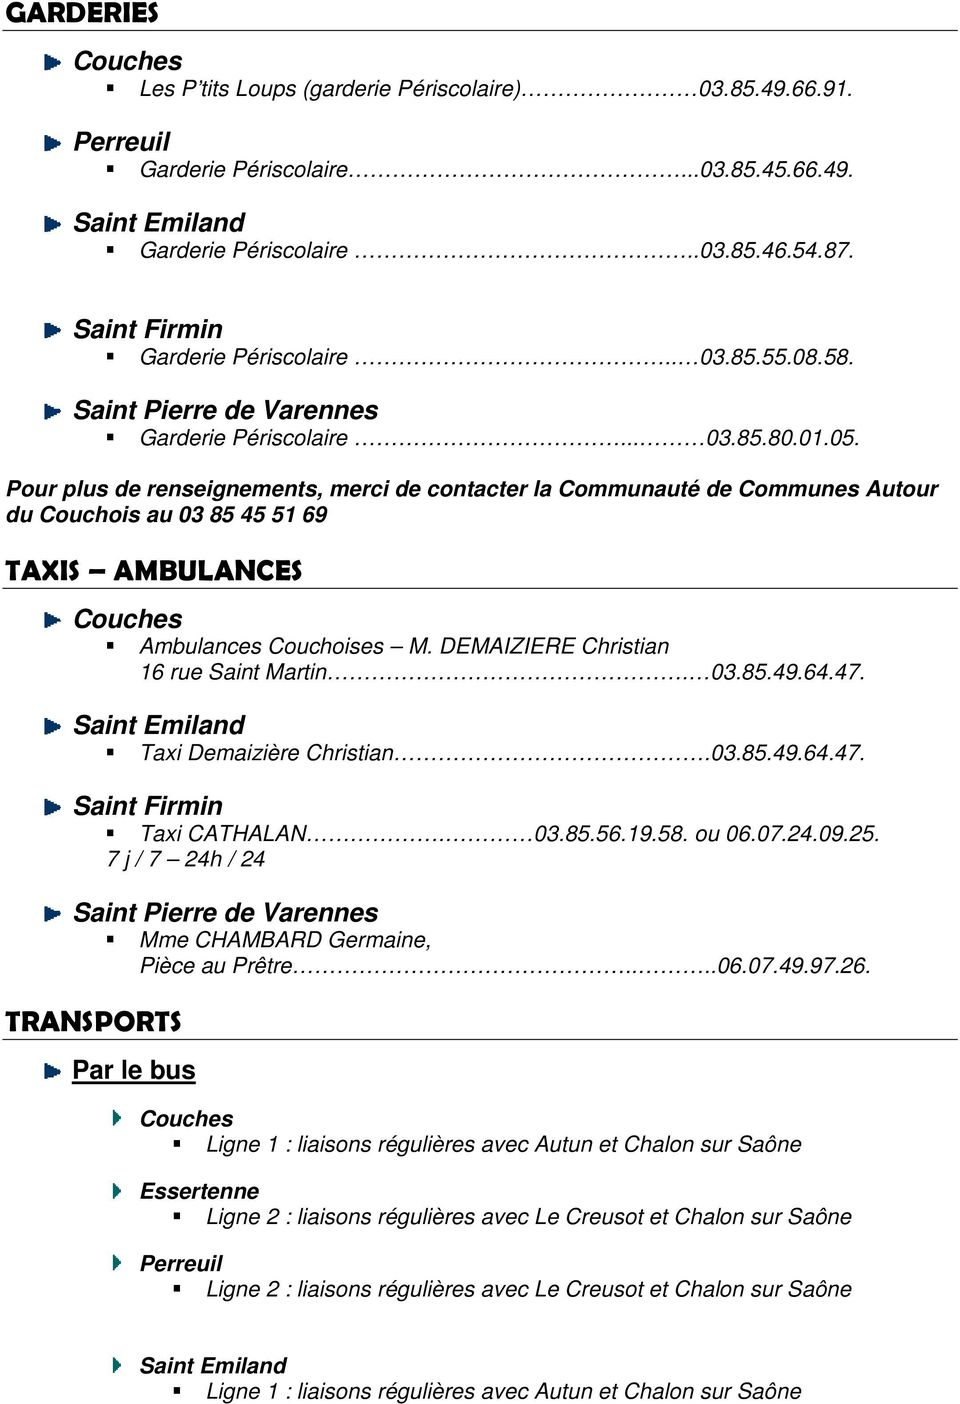 Pour plus de renseignements, merci de contacter la Communauté de Communes Autour du Couchois au 03 85 45 51 69 TAXIS AMBULANCES Ambulances Couchoises M. DEMAIZIERE Christian 16 rue Saint Martin. 03.85.49.